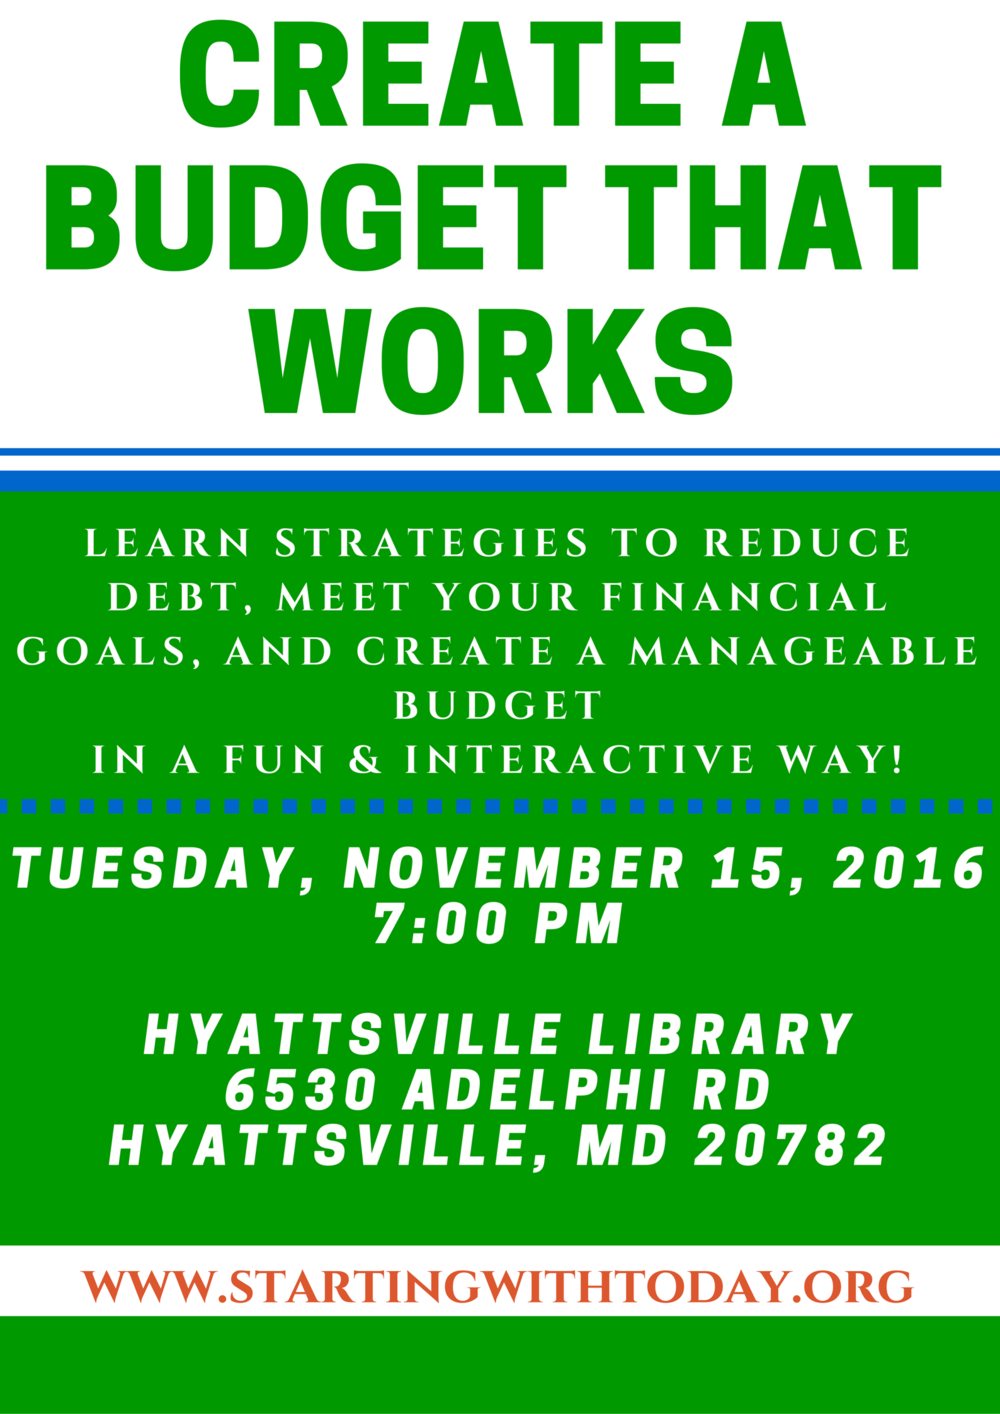 Budget 11.15.16.png